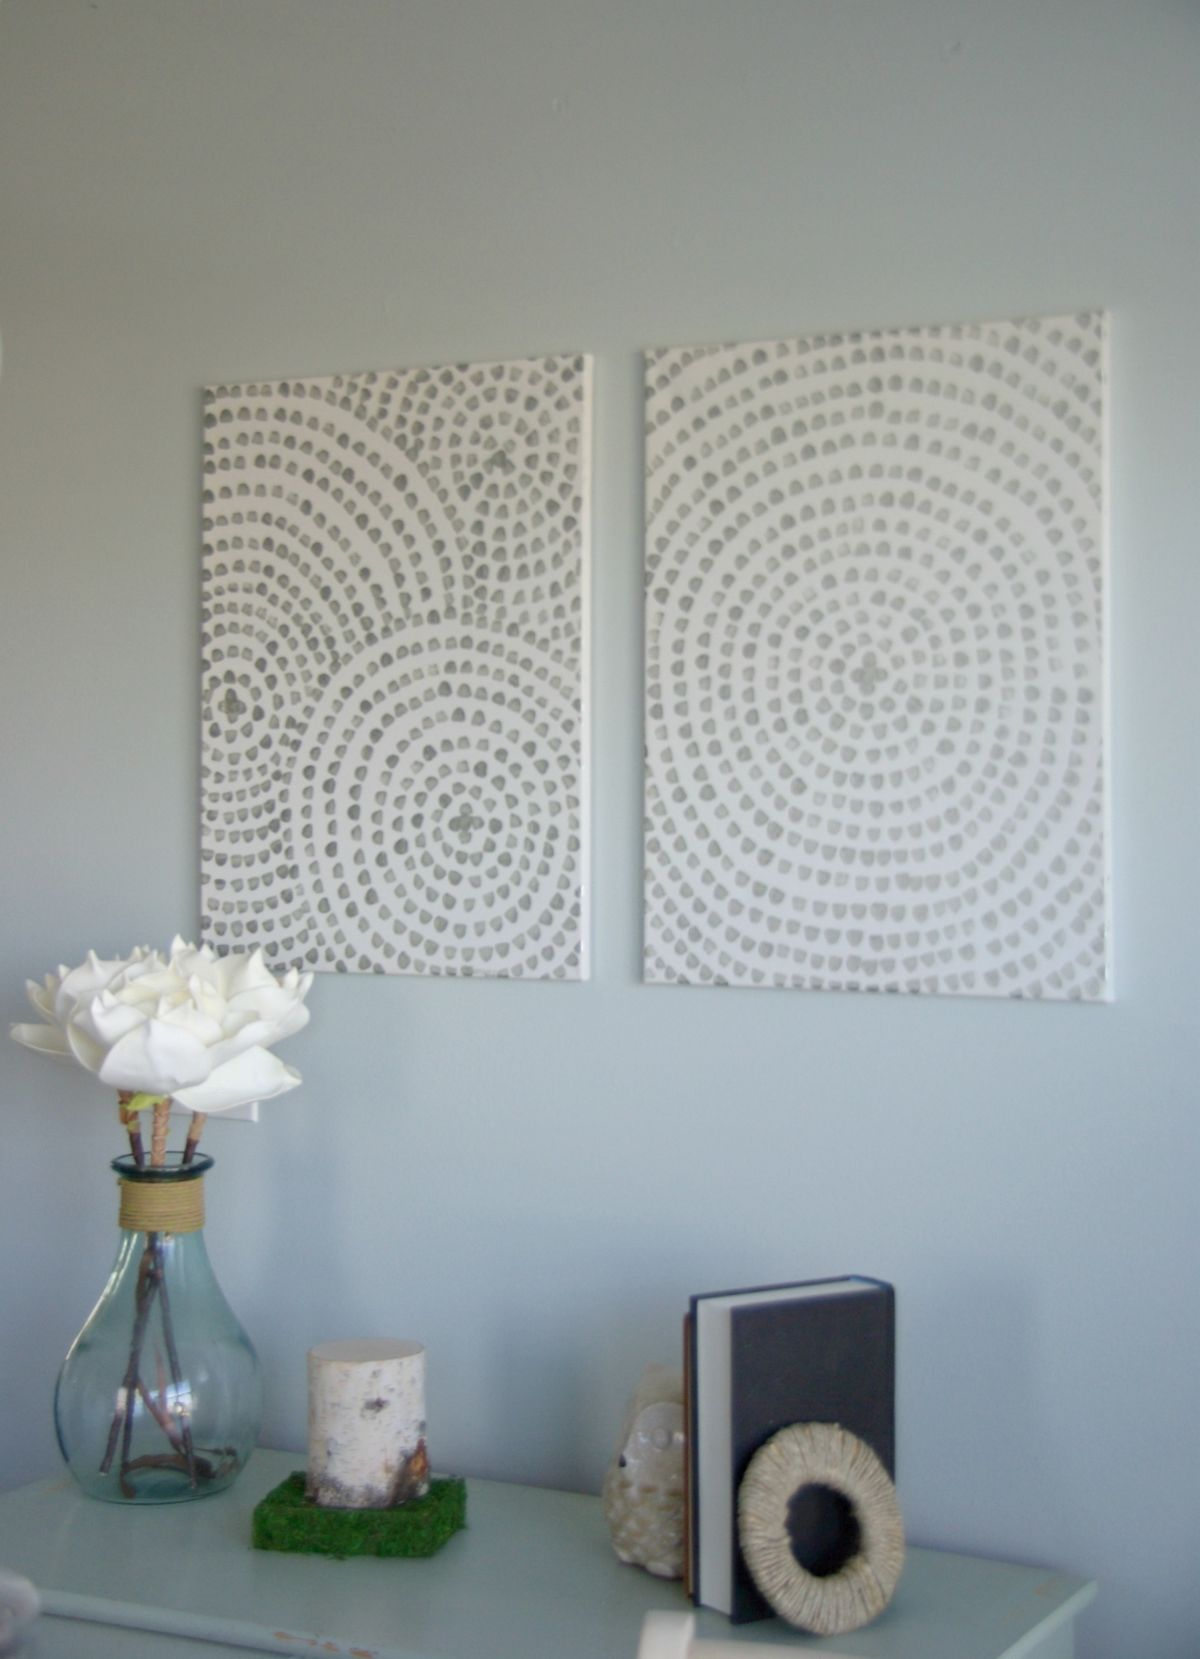 Diy Wall Decor Diy Canvas Wall Art A Low Cost Way To Add Art To Your Home Diy